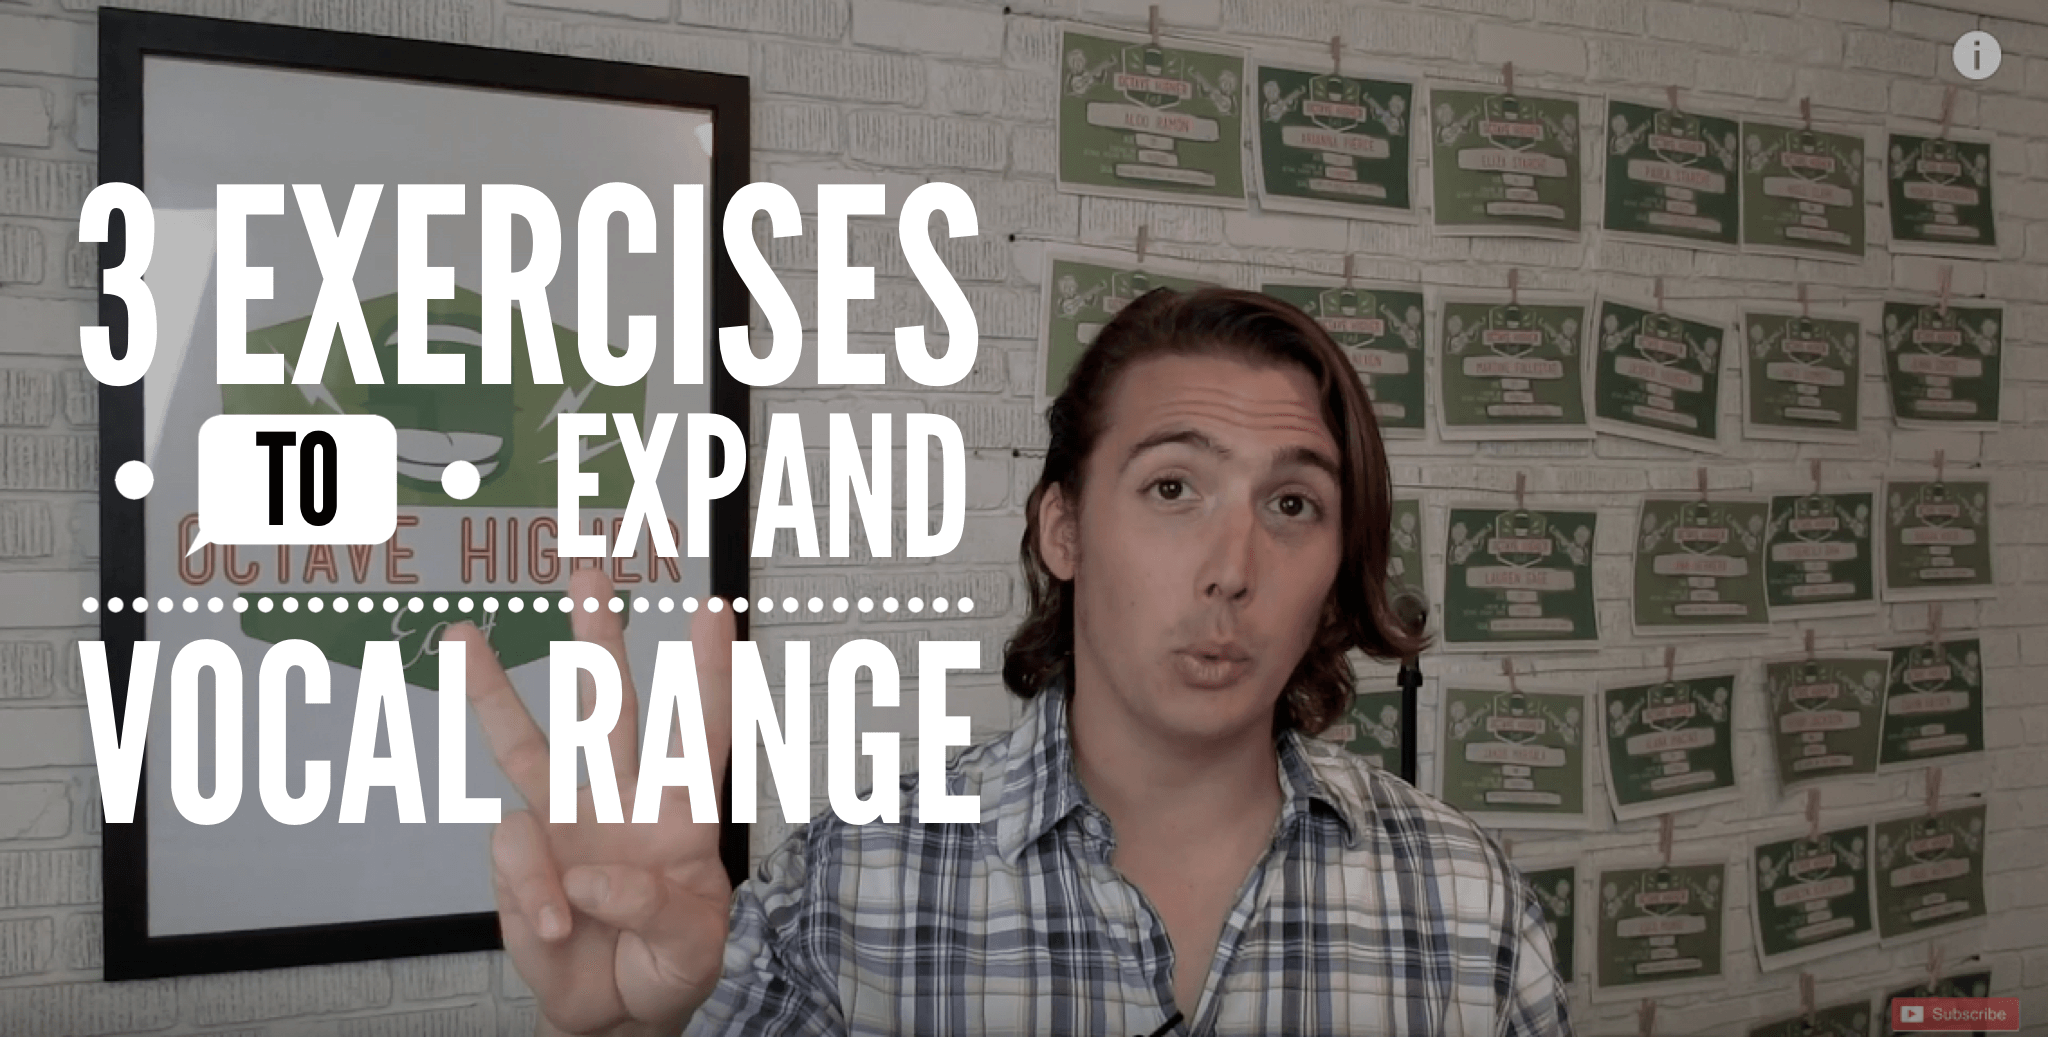 3 Exercises to Expand Vocal Range One